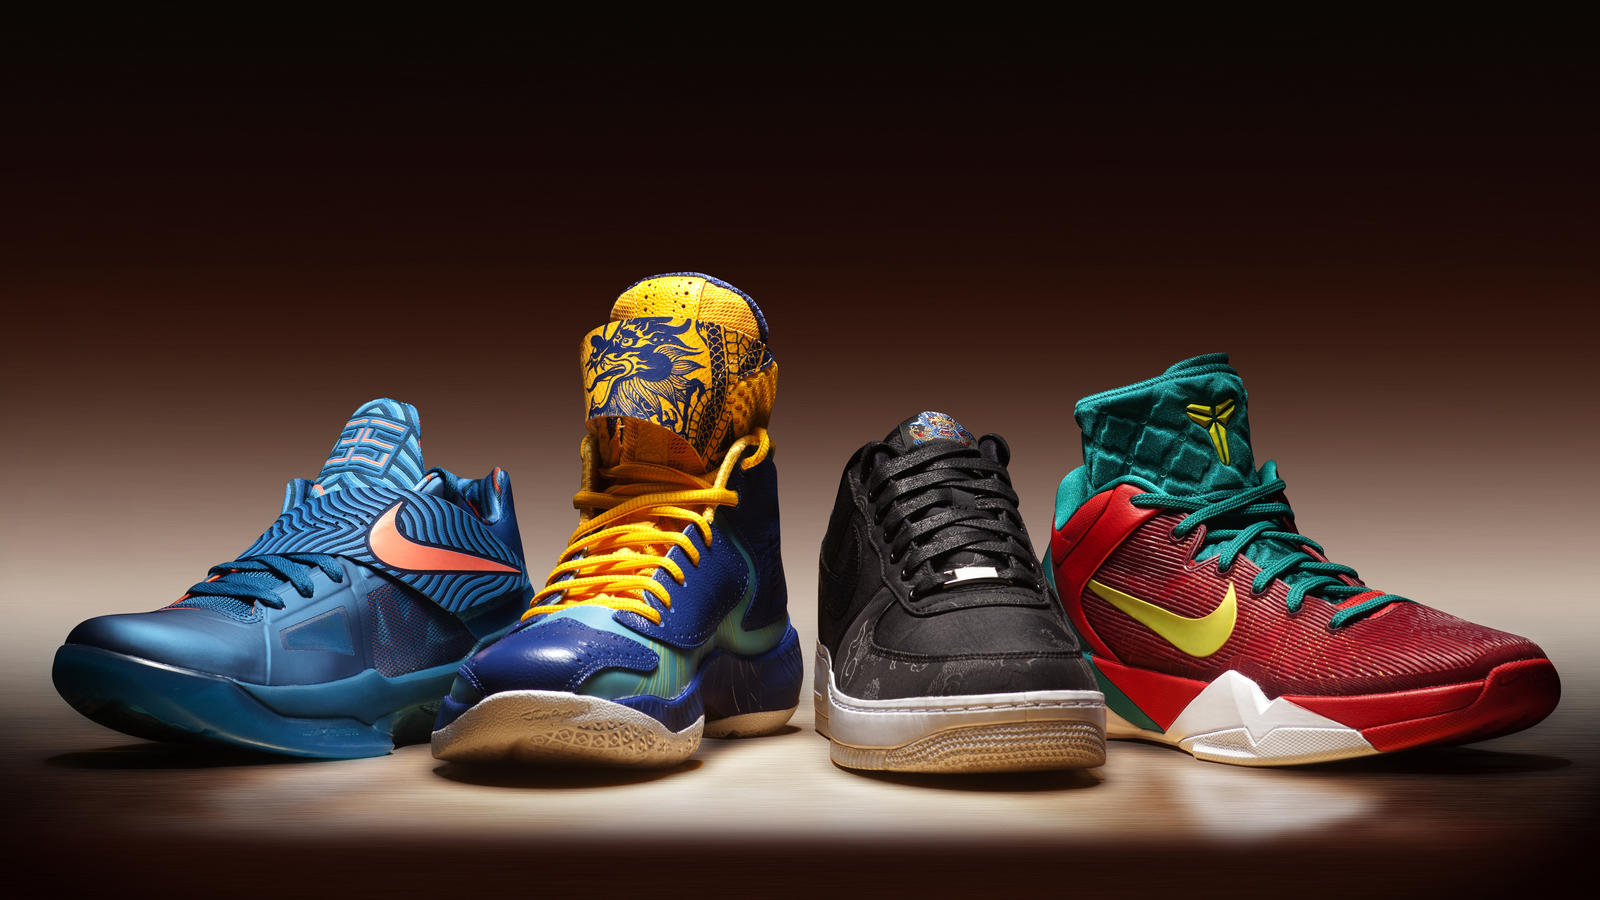 Nike 'Year of the Dragon' Collection